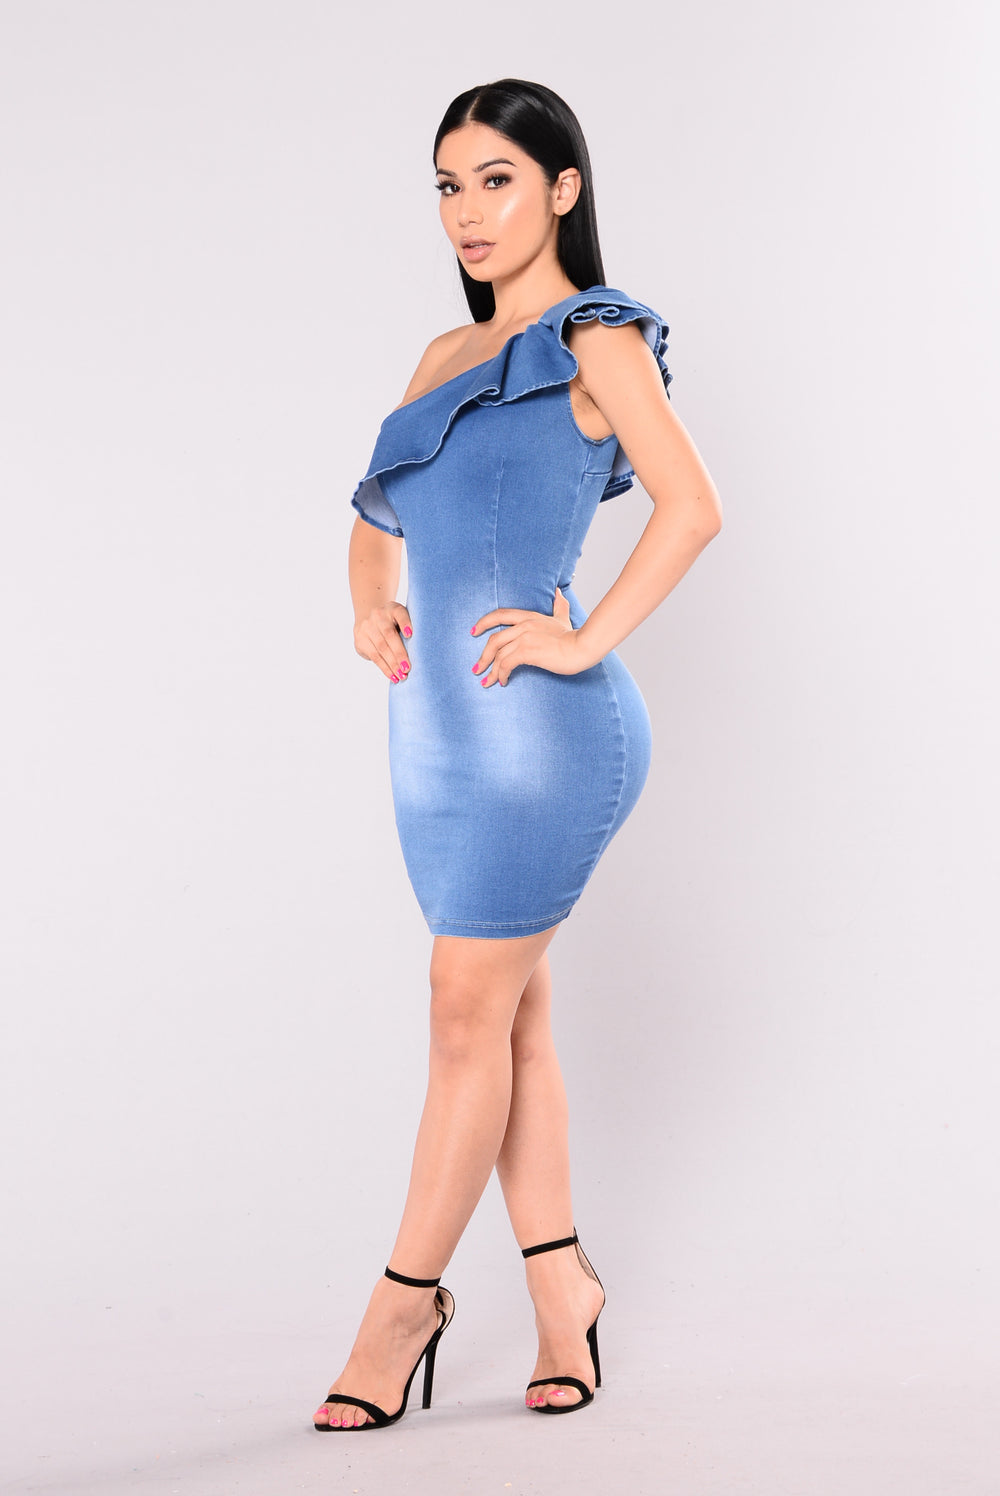 As It Unfolds Denim Dress - Light